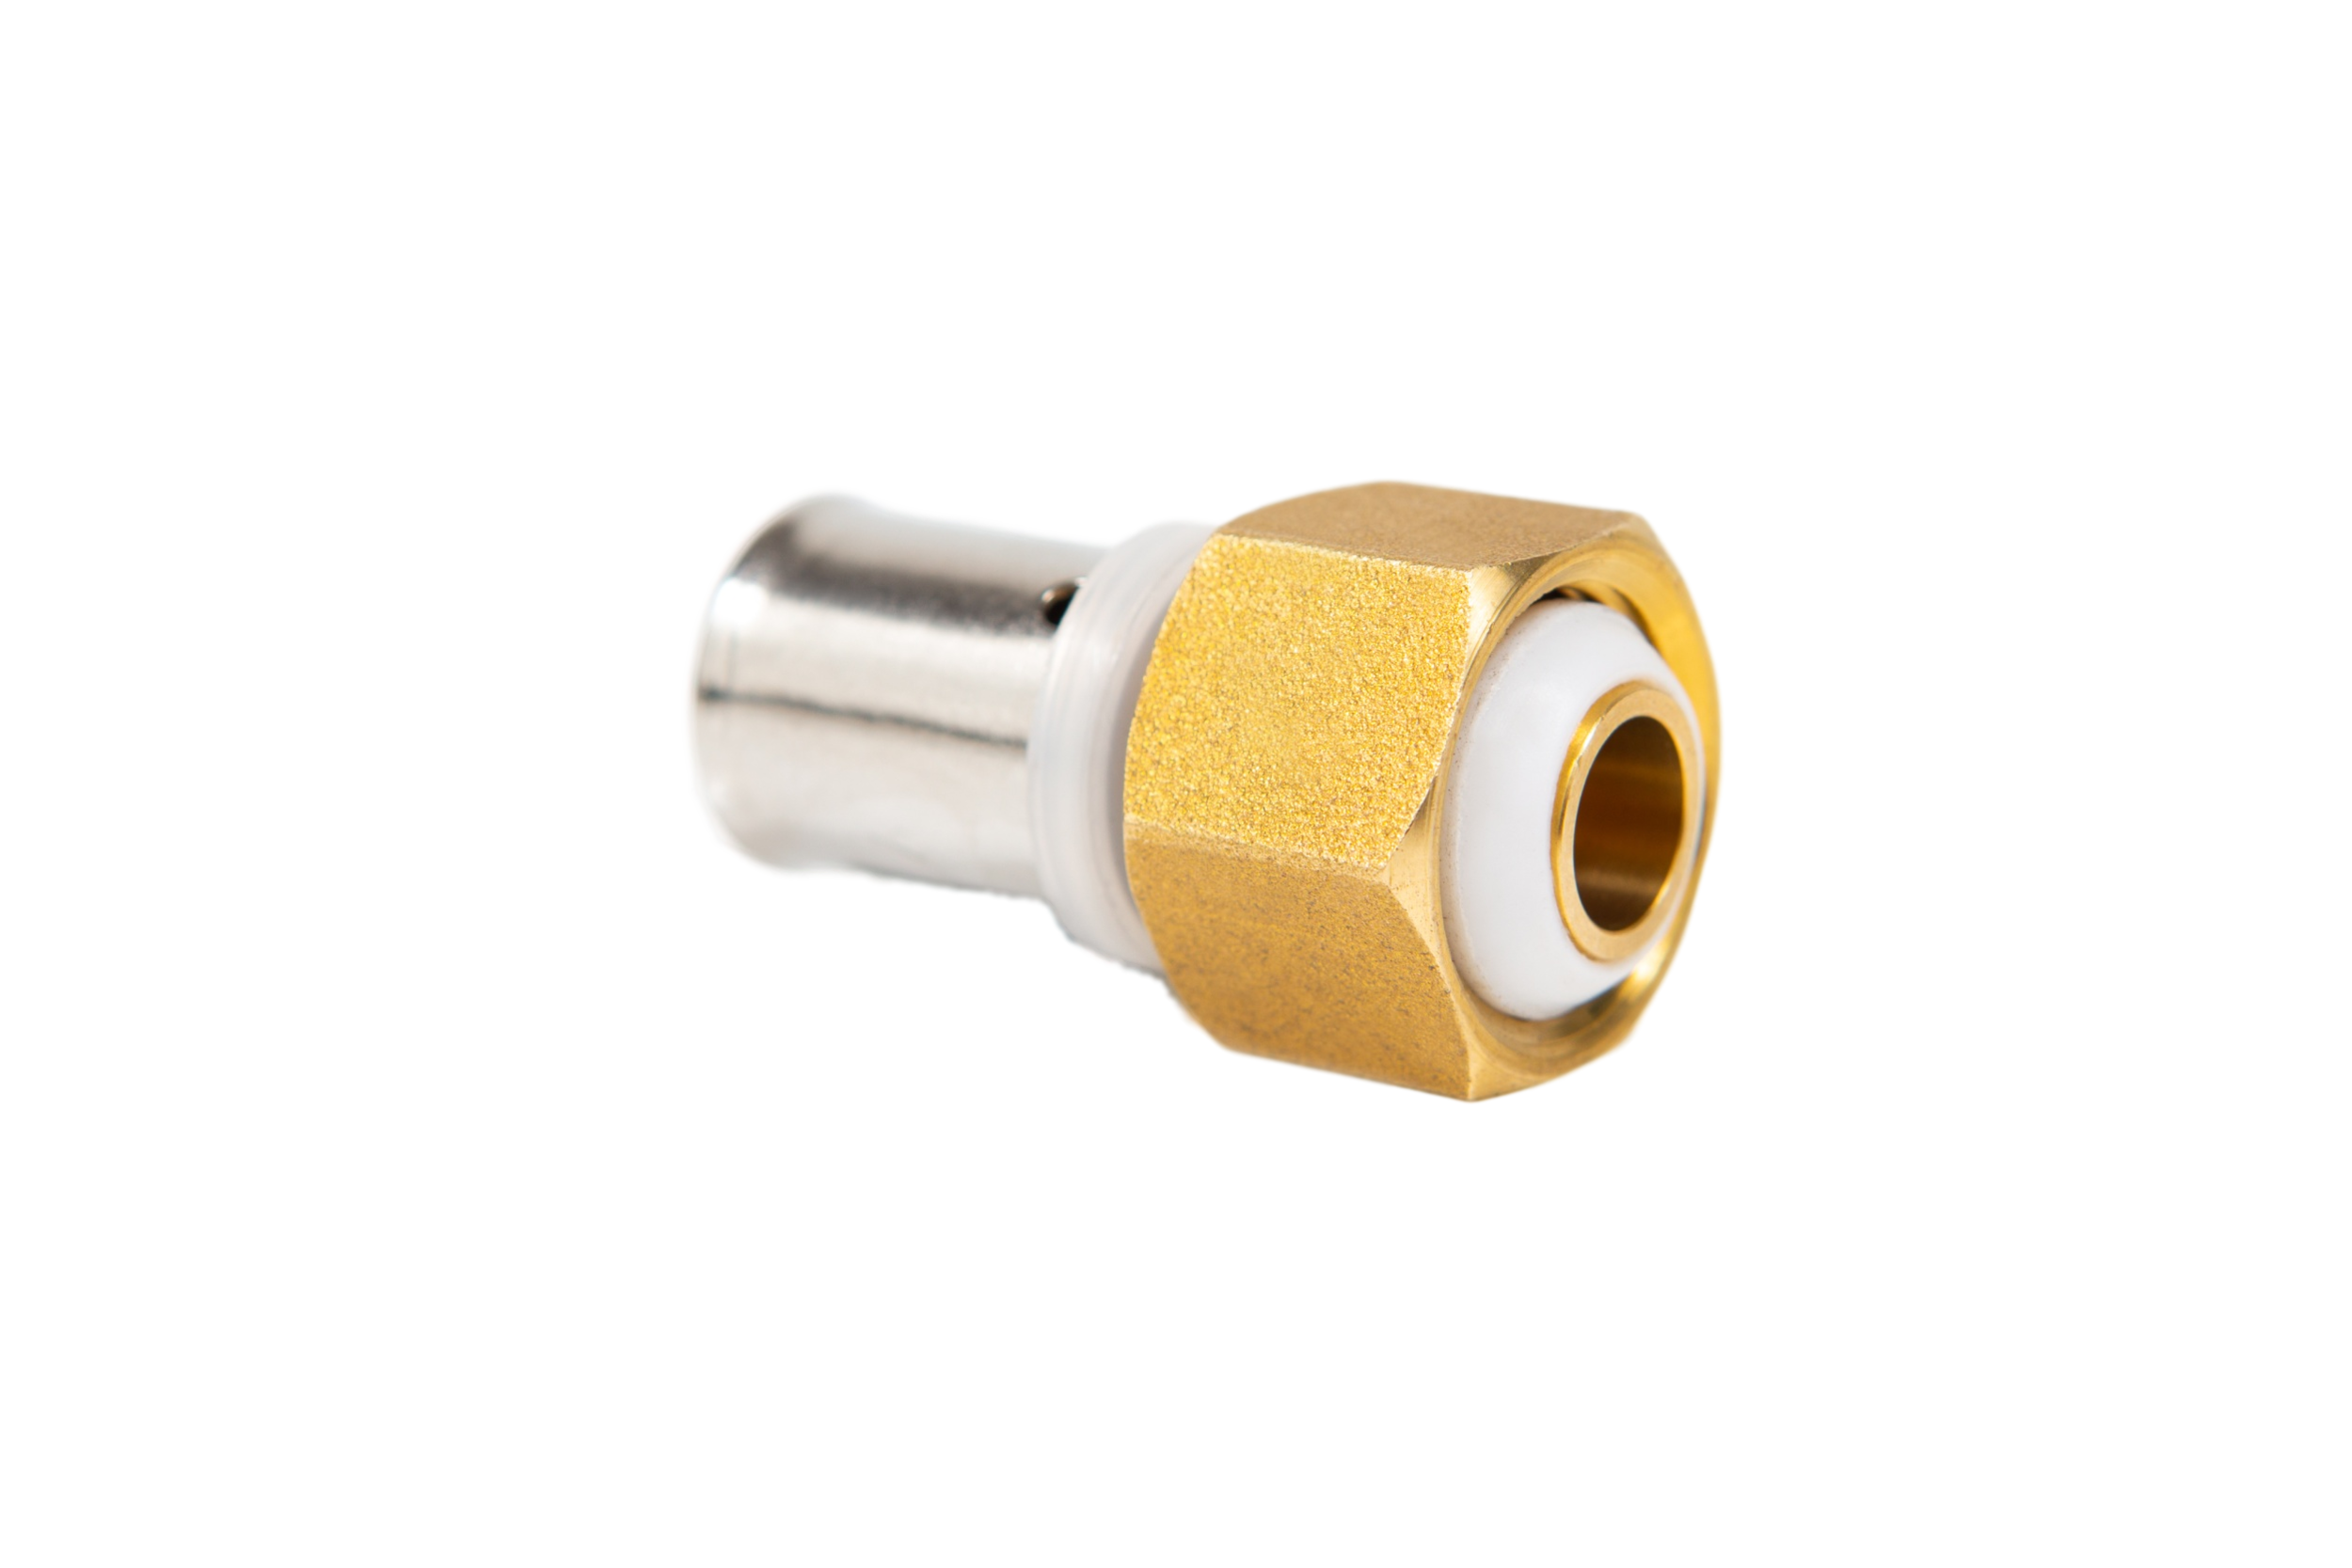 FEMALE SWIVEL ADAPTOR